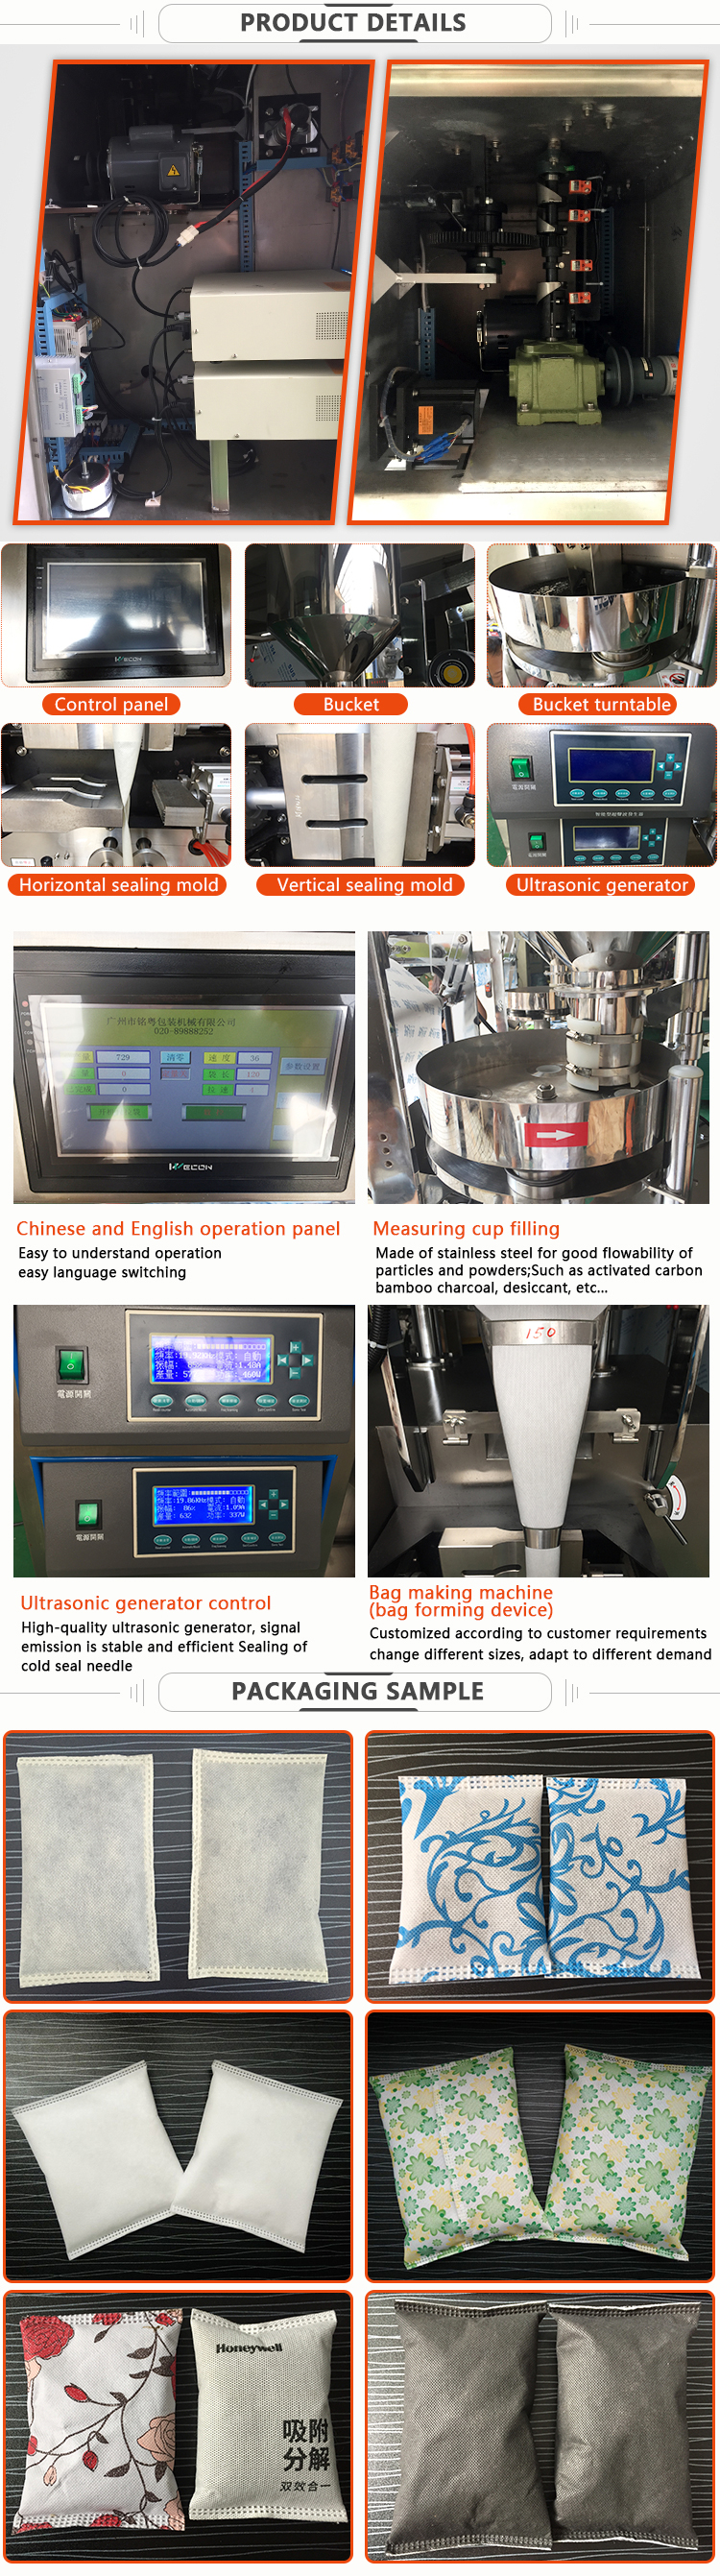 Multi Fungsi Automatic Carbon Powder Sachet Ultrasonik Mesin Kemasan